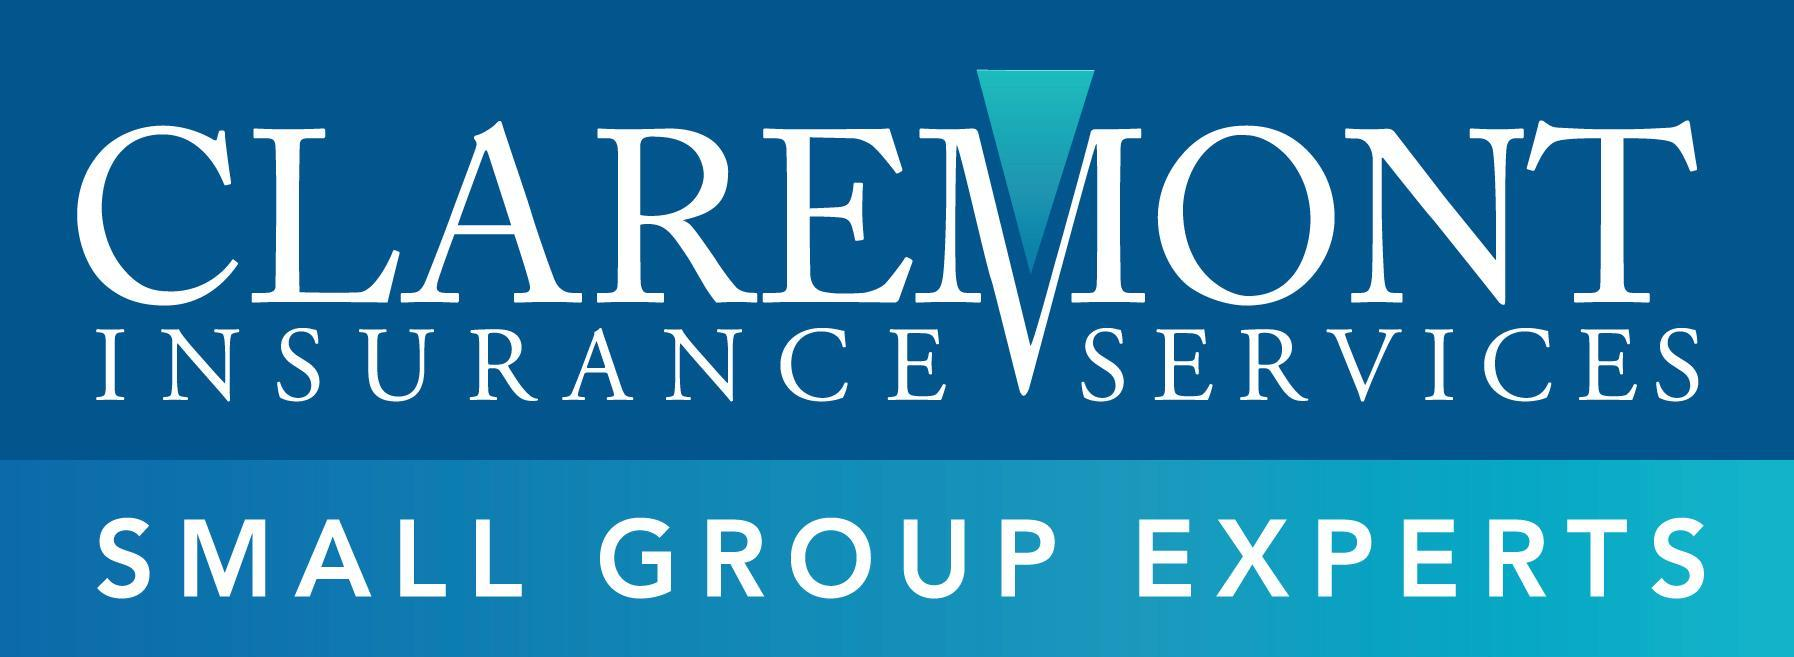 Claremont Insurance Services logo